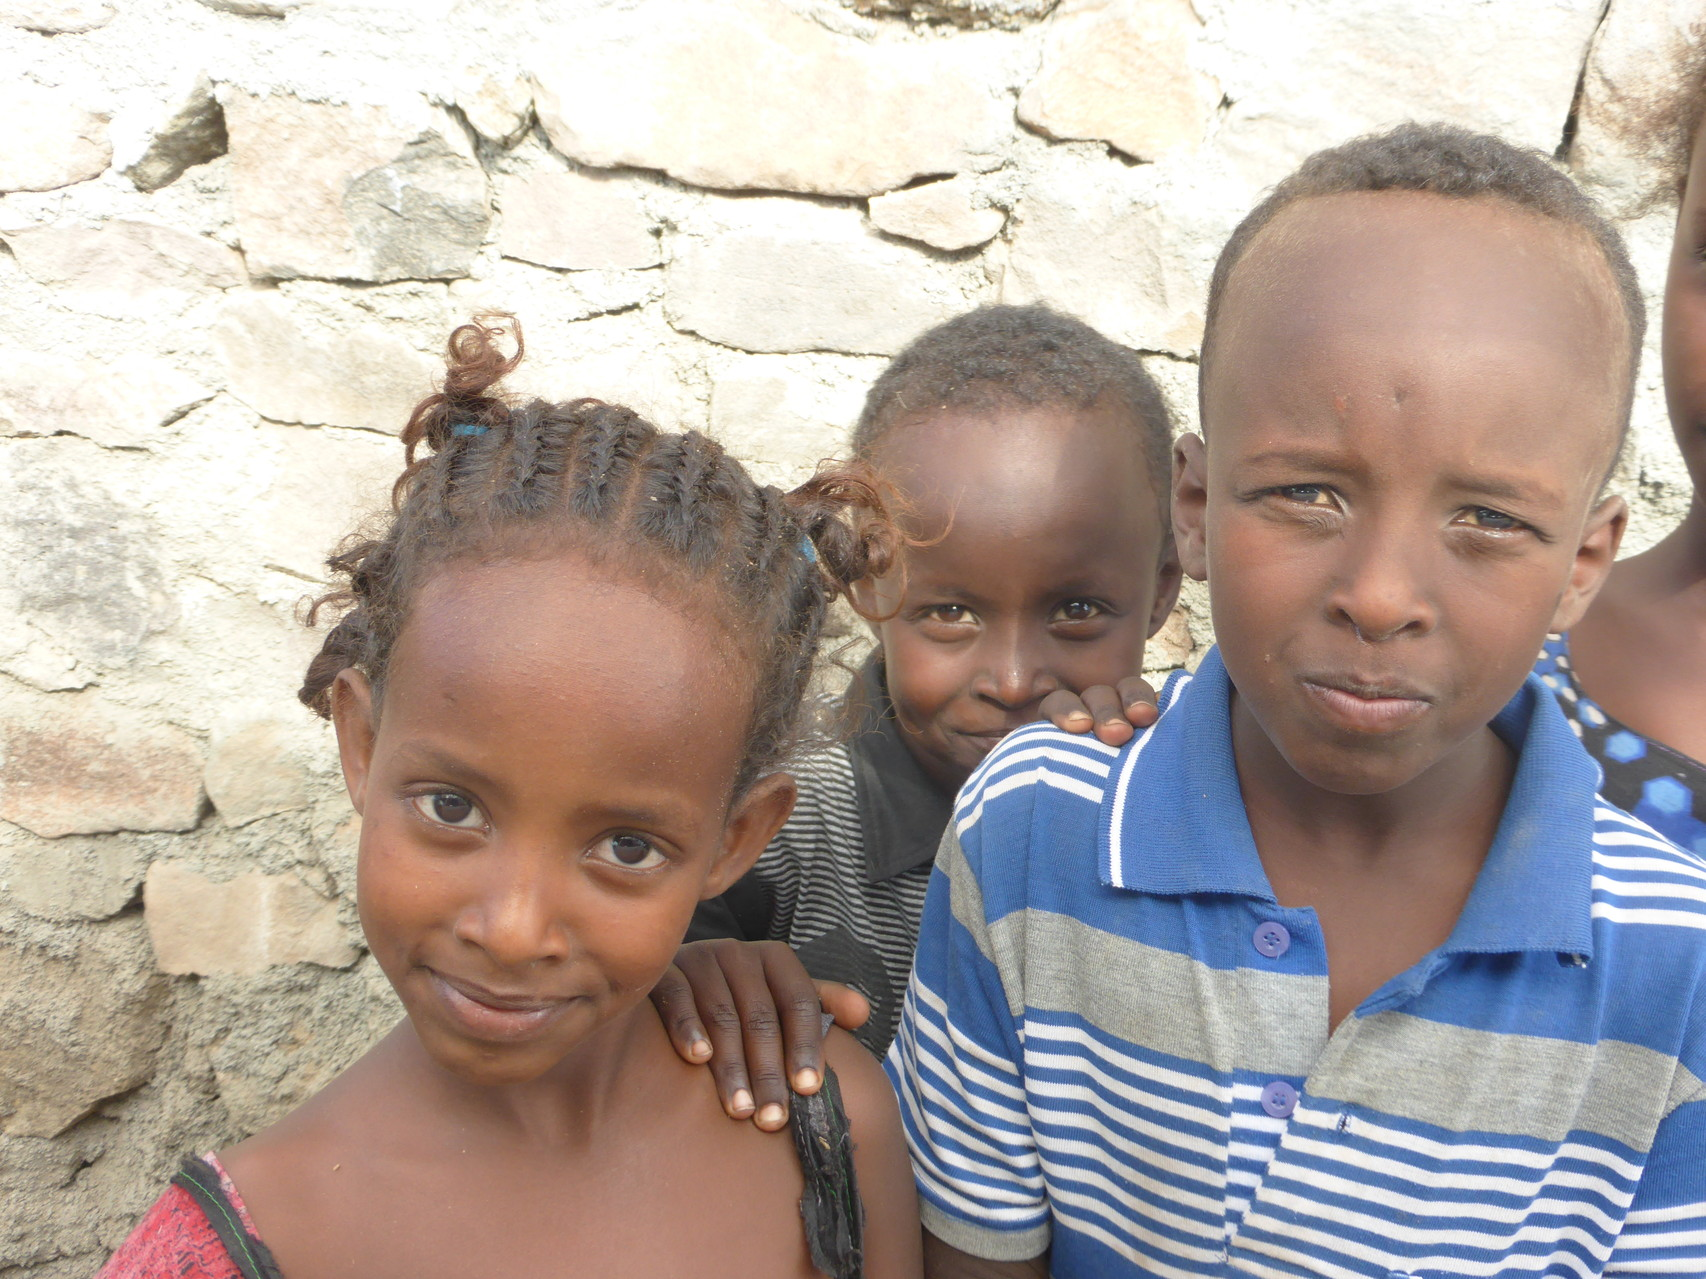 Enfants du village de Guirrori